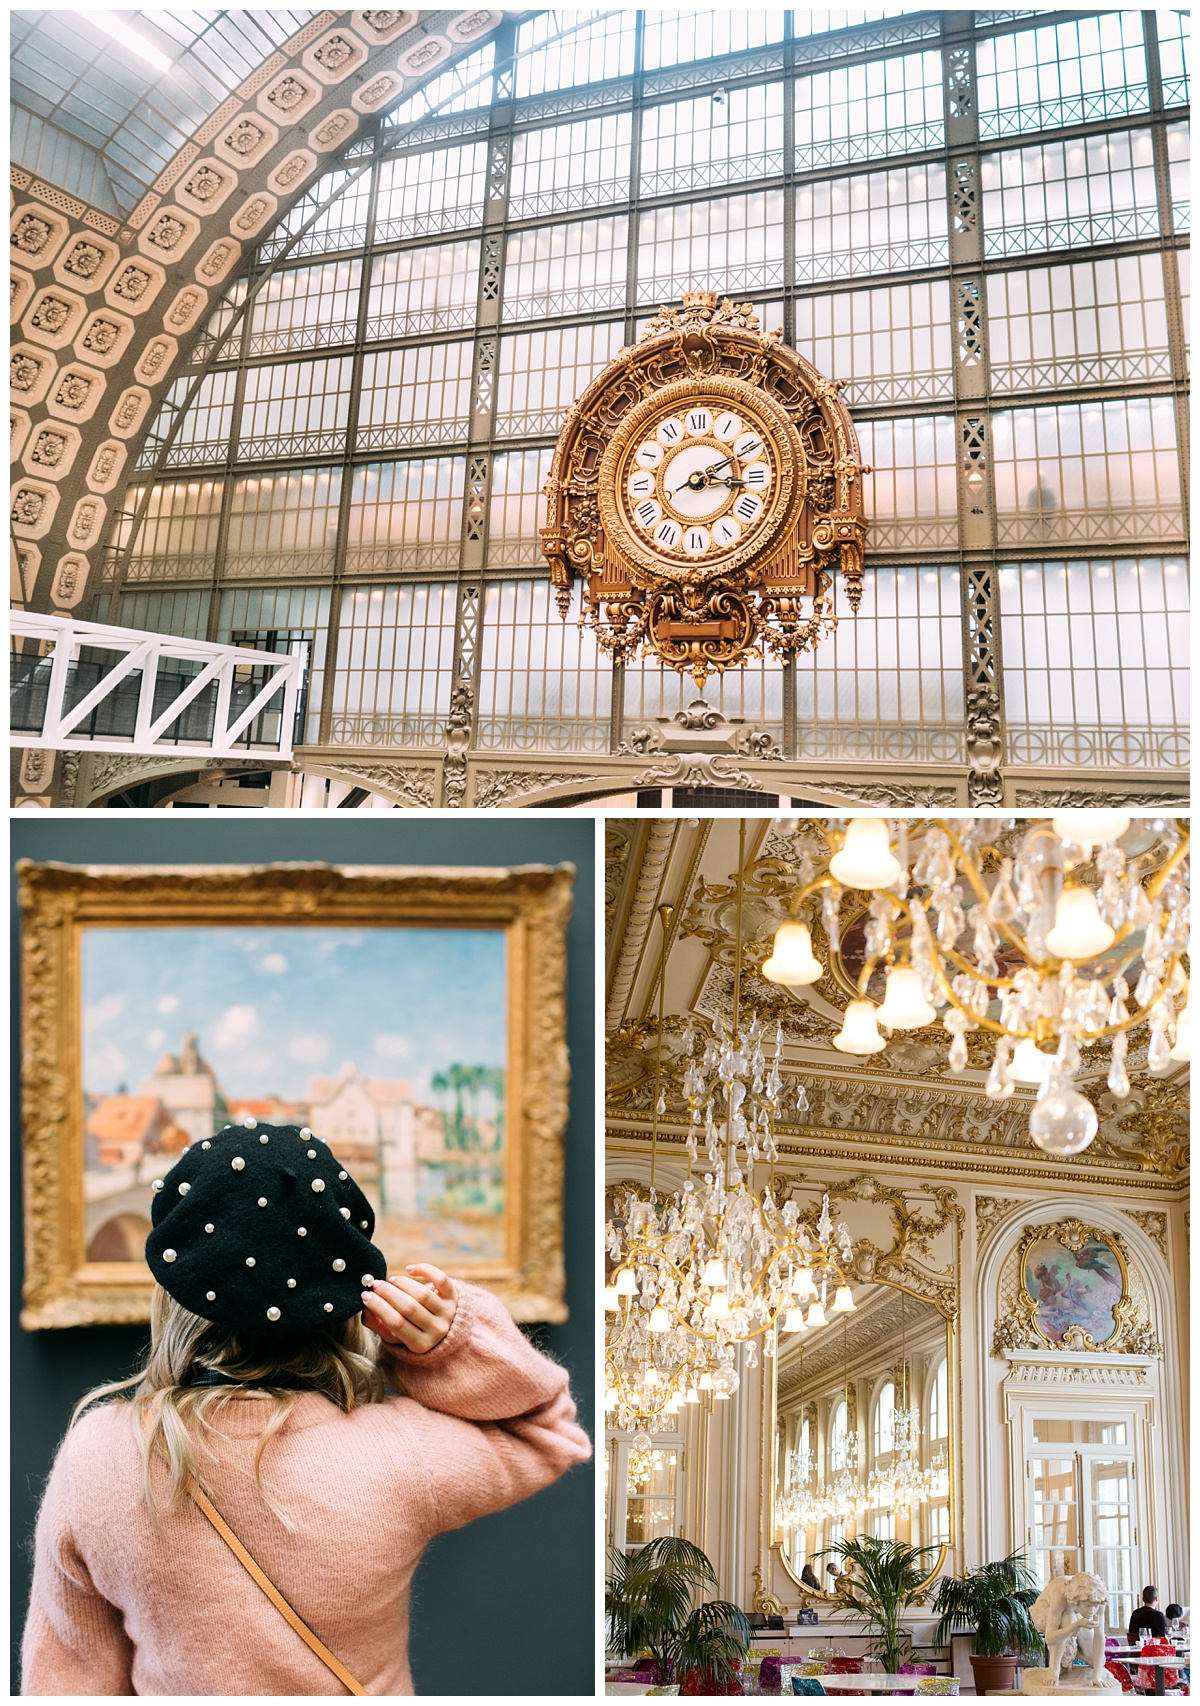 This is Musée d'Orsay. Another museum with beautiful artwork. Check out this extravagant caféthat was inside. I'm telling you Paris is everything you can dream of.